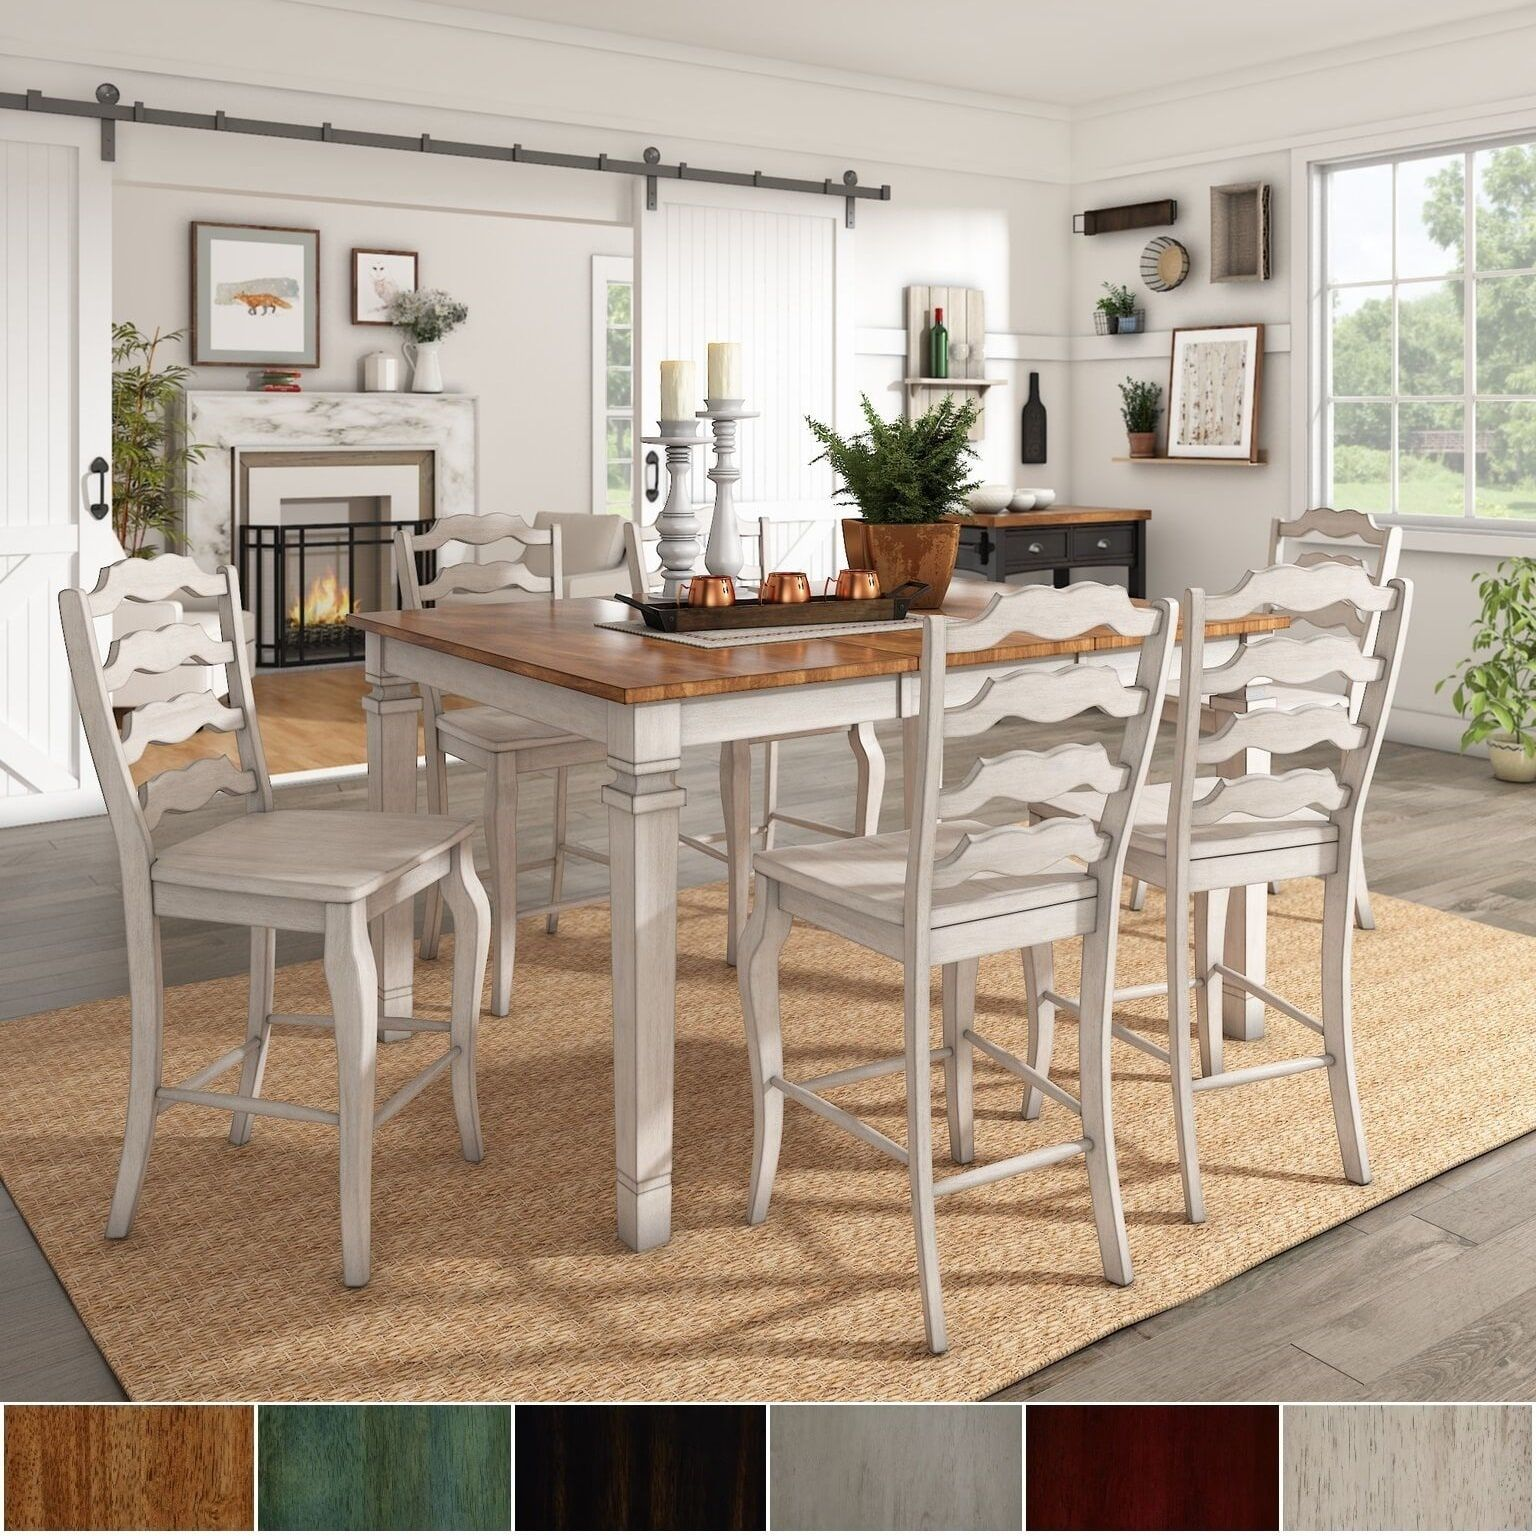 Elena Antique White Extendable Counter Height Dining Set